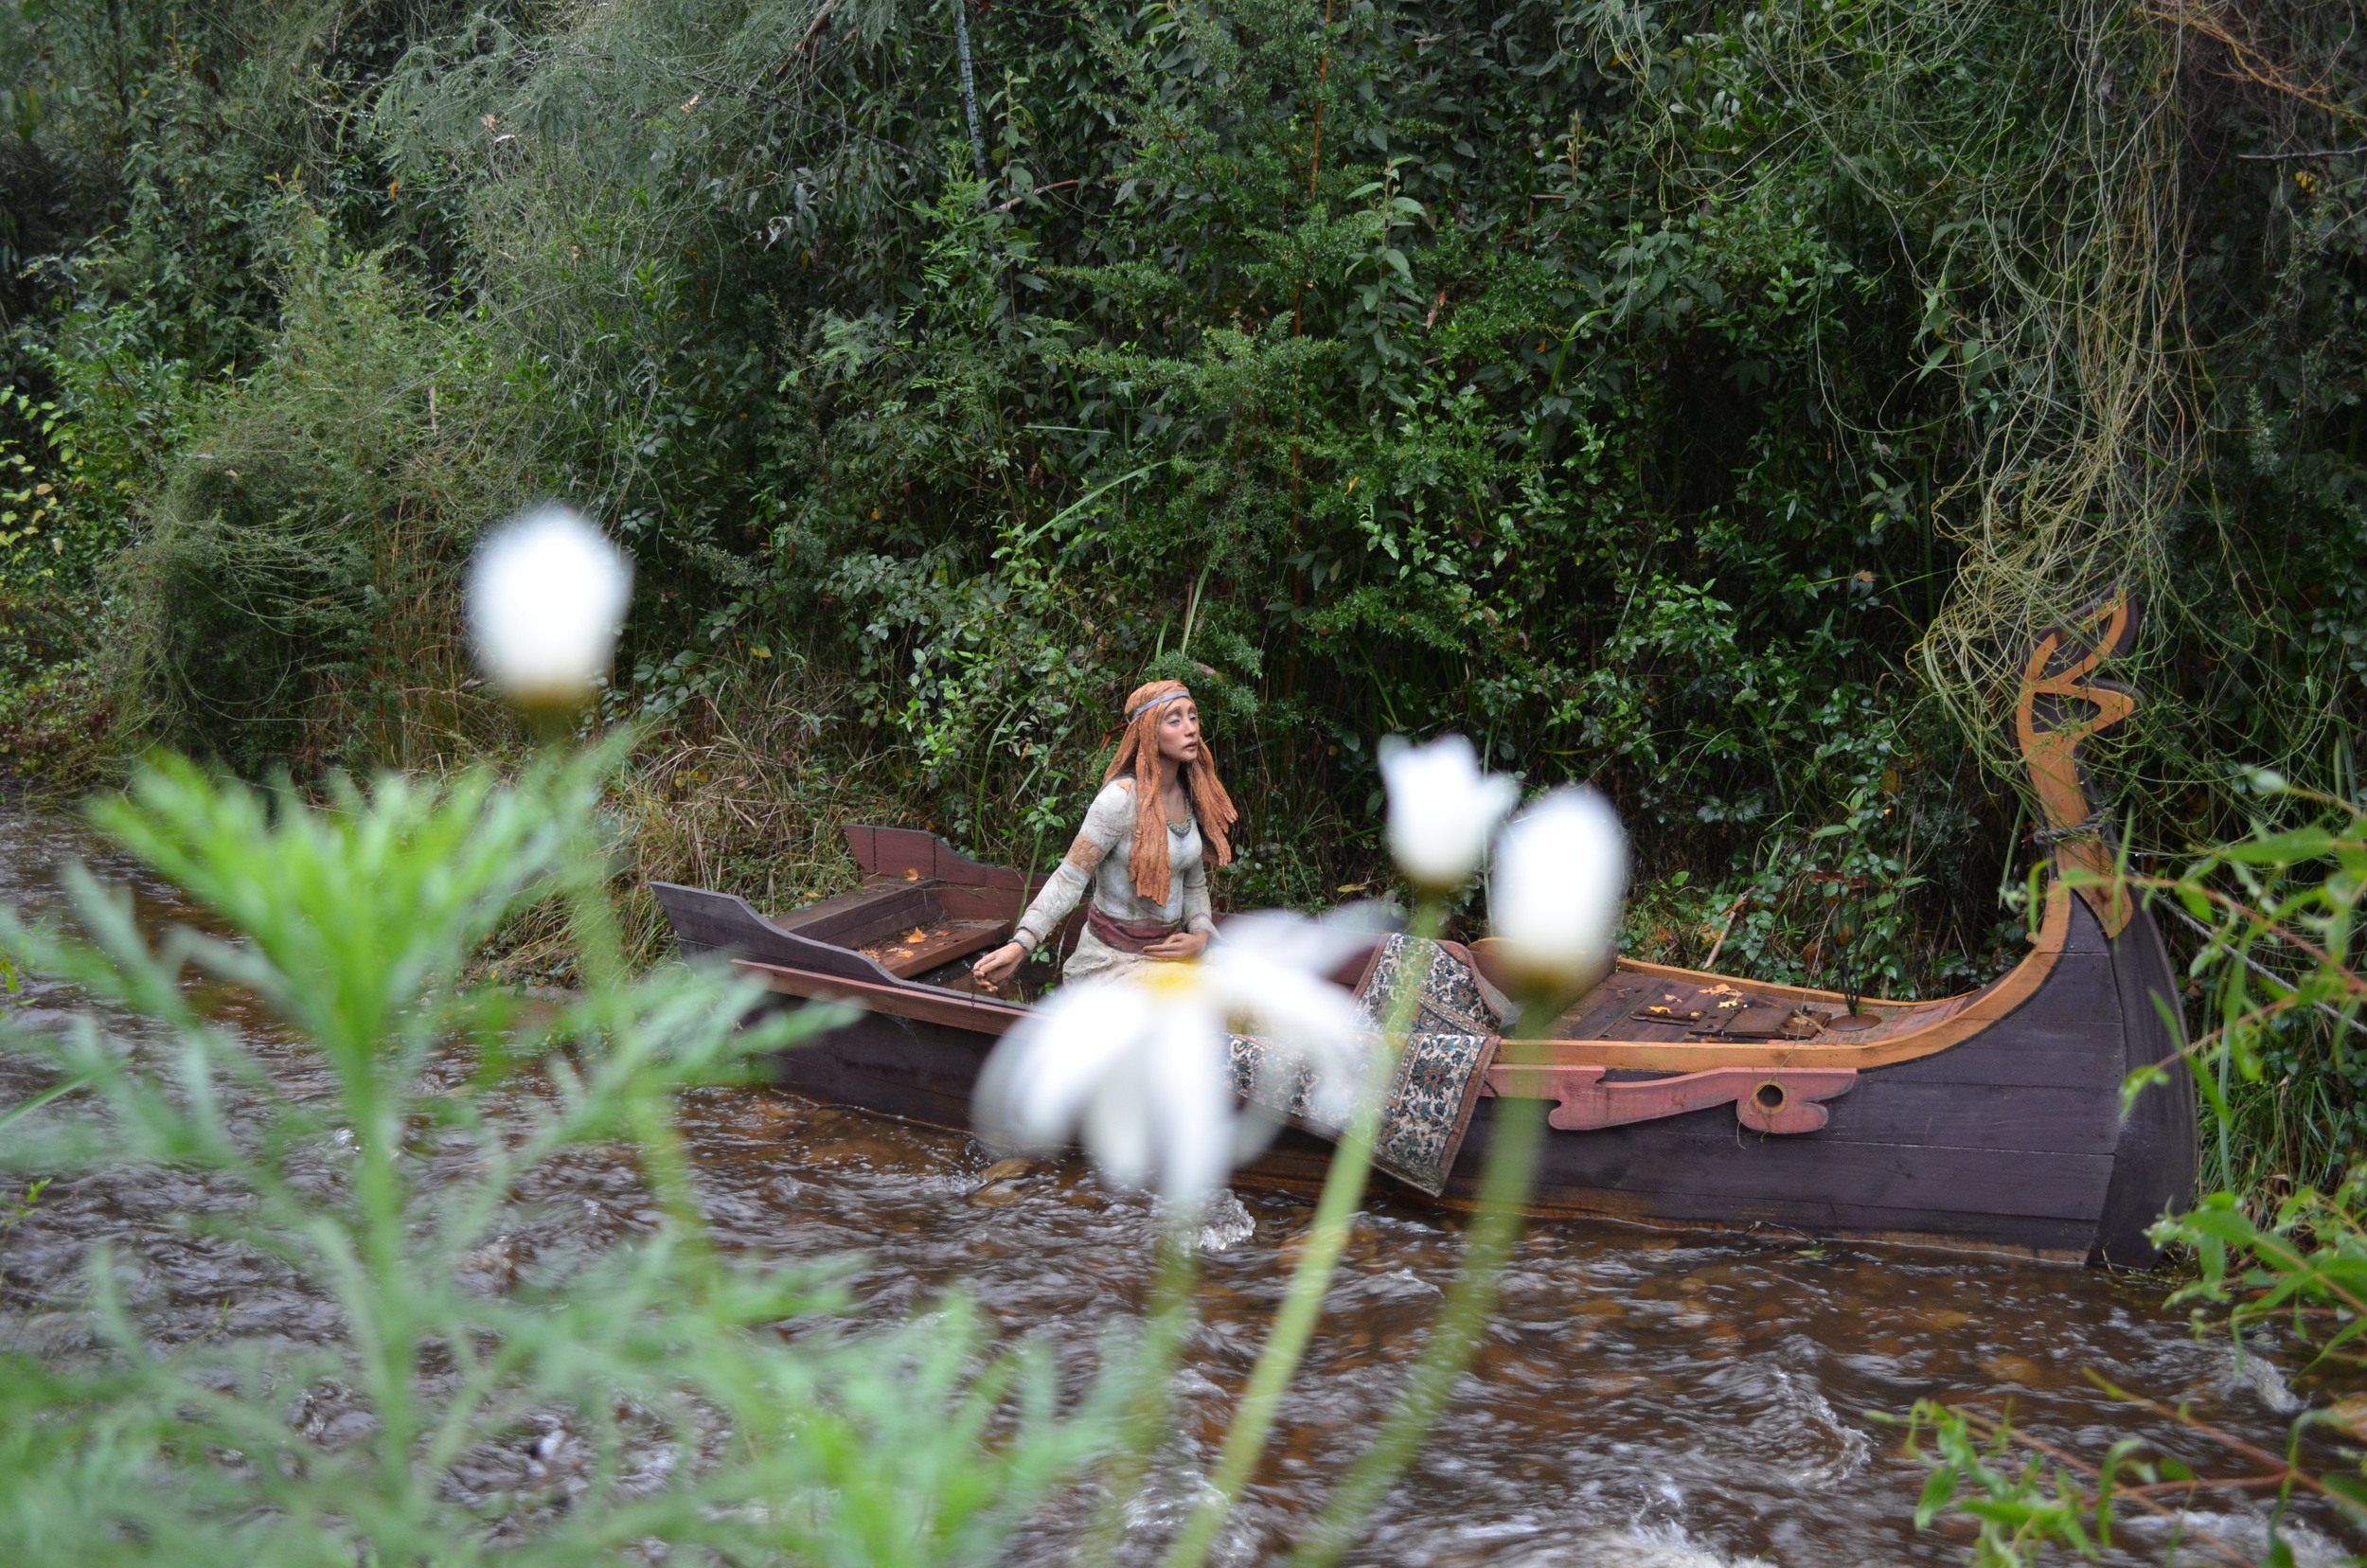 The famous Lady of Shalott